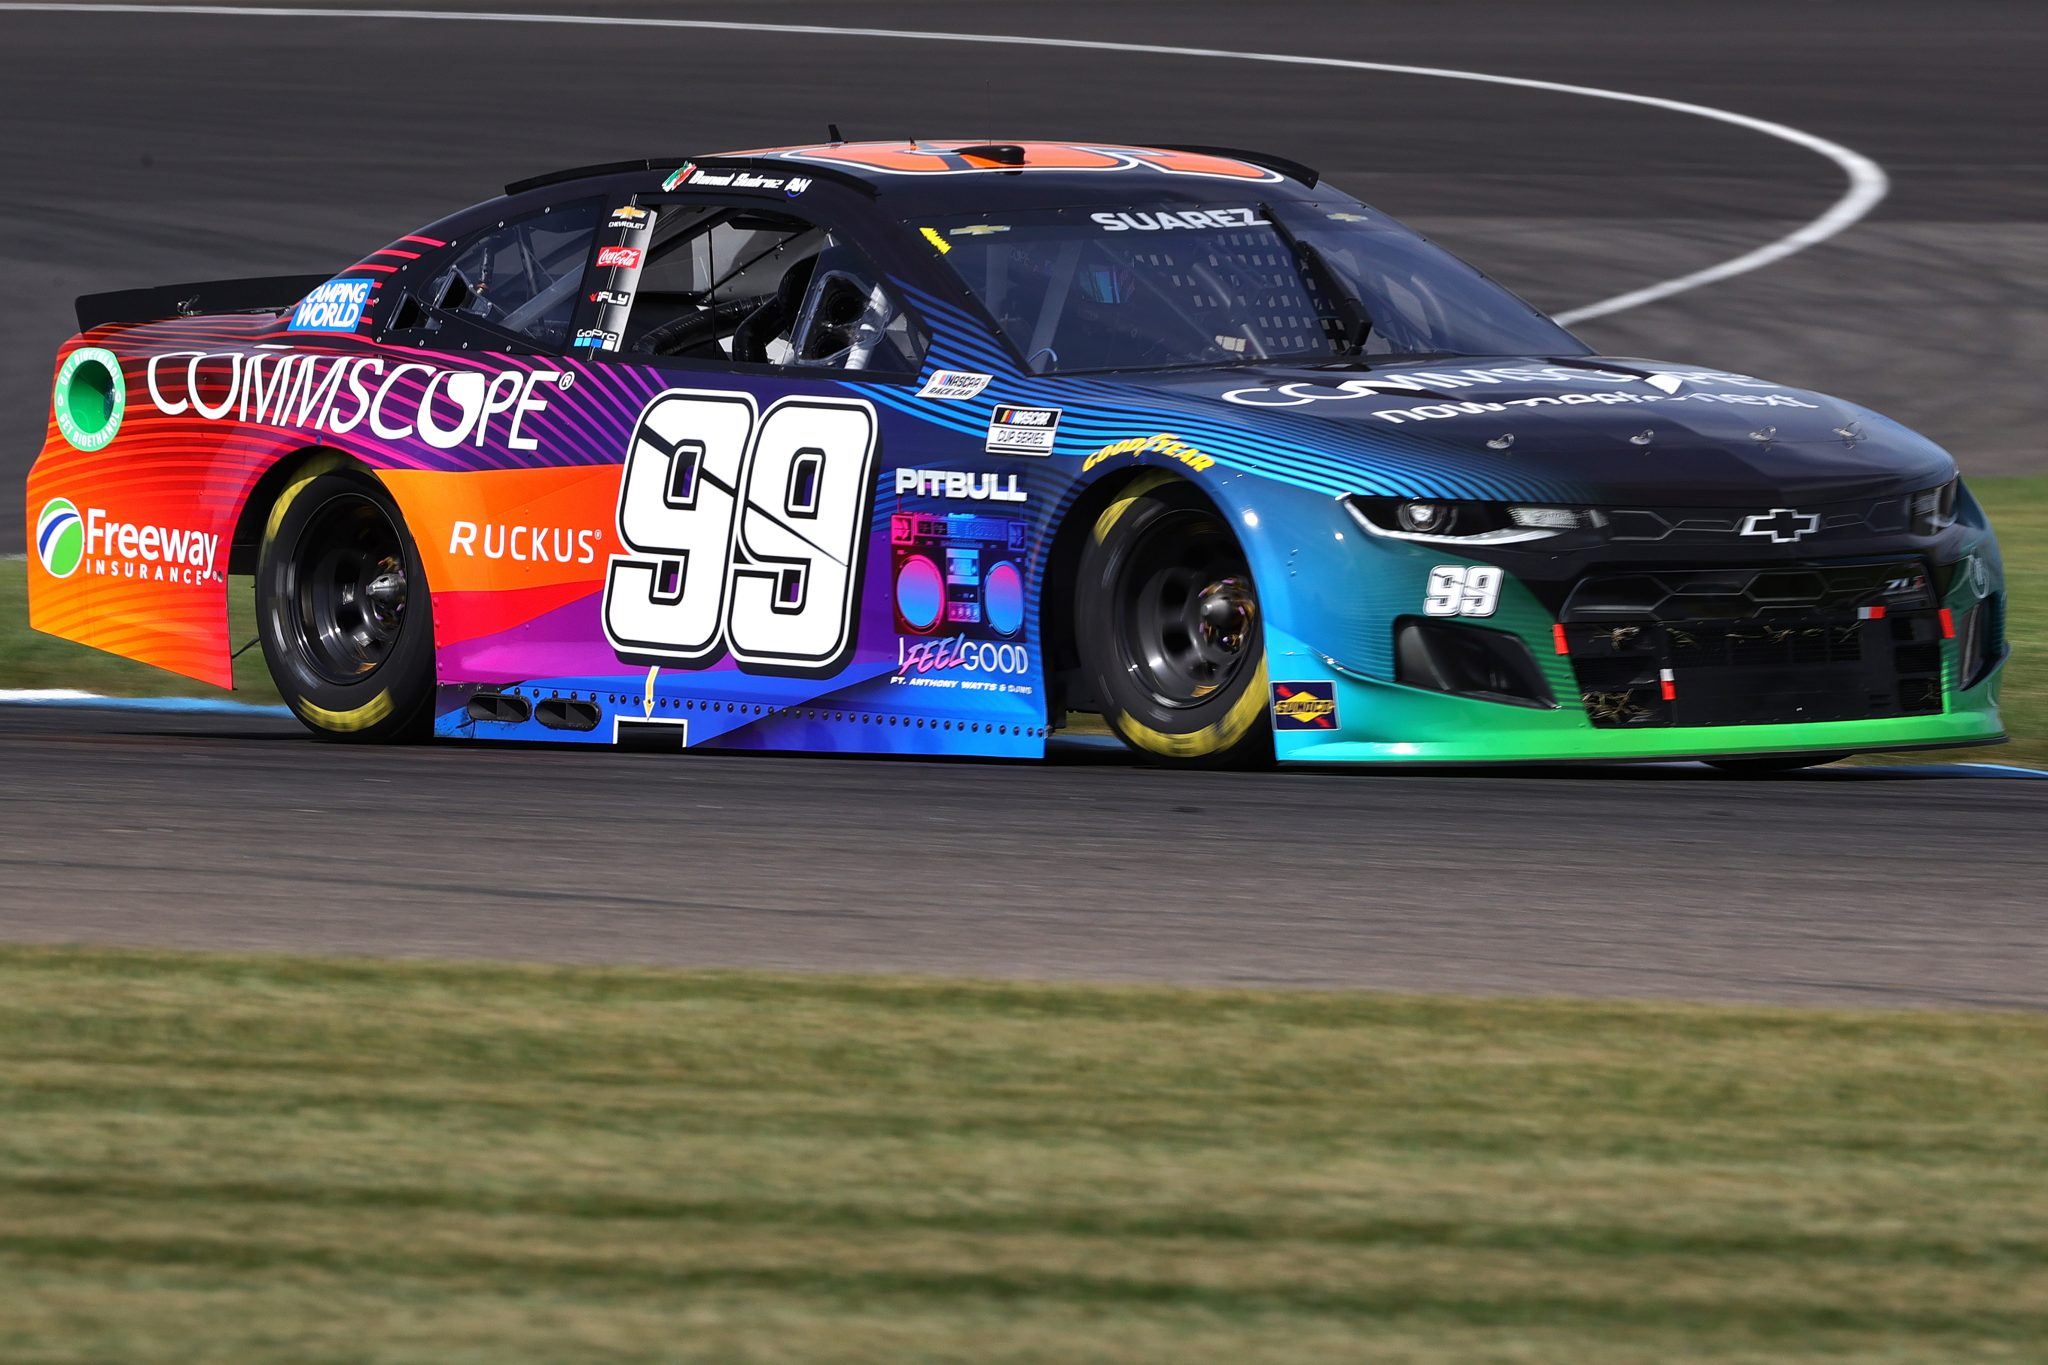 INDIANAPOLIS, INDIANA - AUGUST 14: Daniel Suarez, driver of the #99 CommScope Chevrolet, drives during practice for the NASCAR Cup Series Verizon 200 at the Brickyard at Indianapolis Motor Speedway on August 14, 2021 in Indianapolis, Indiana. (Photo by Stacy Revere/Getty Images)   Getty Images